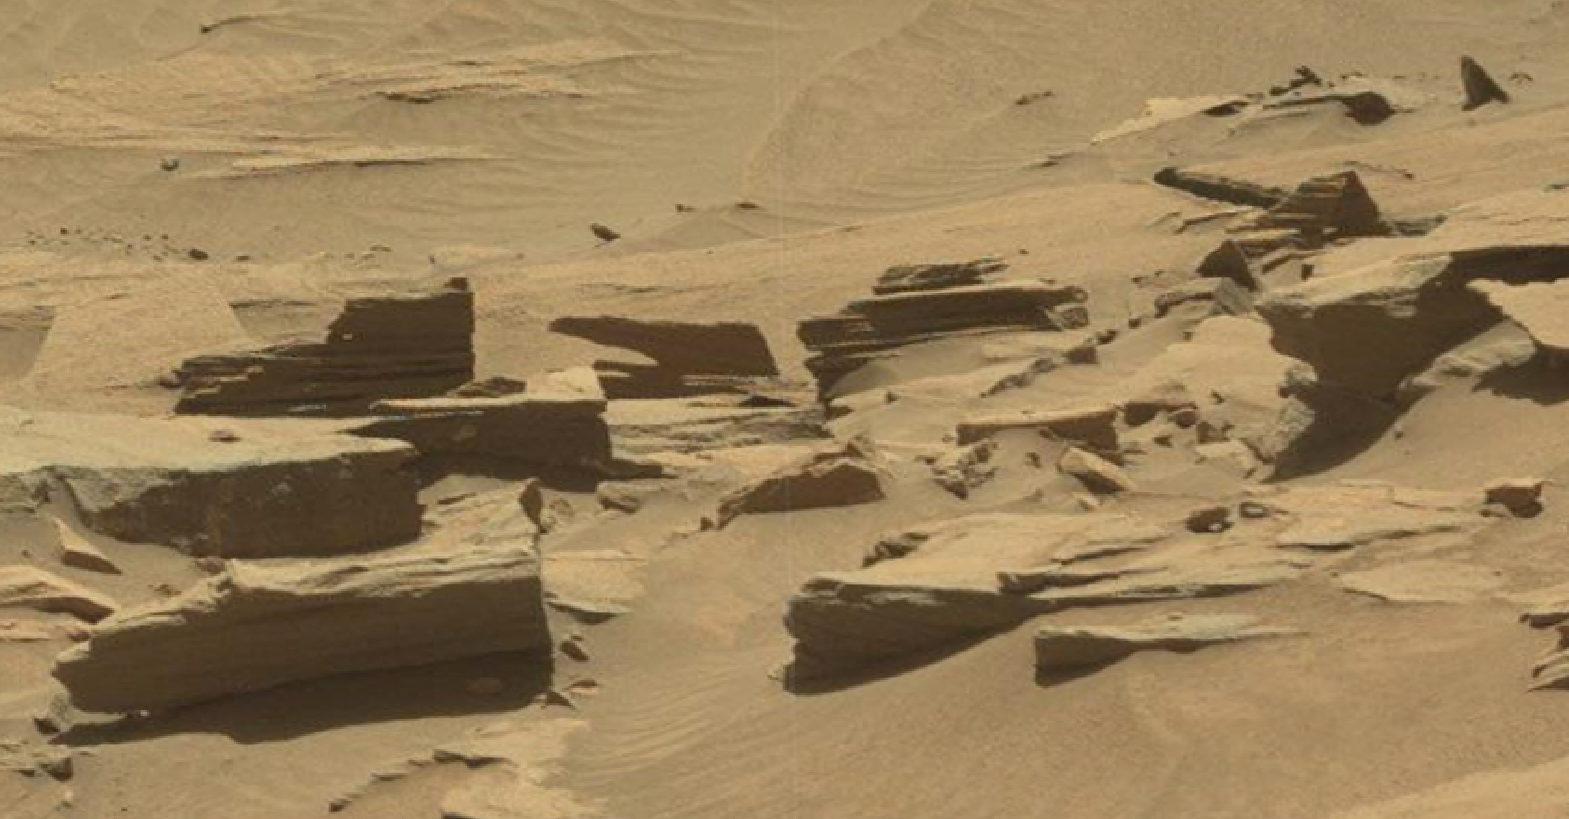 mars sol 1296 anomaly-artifacts 22 was life on mars